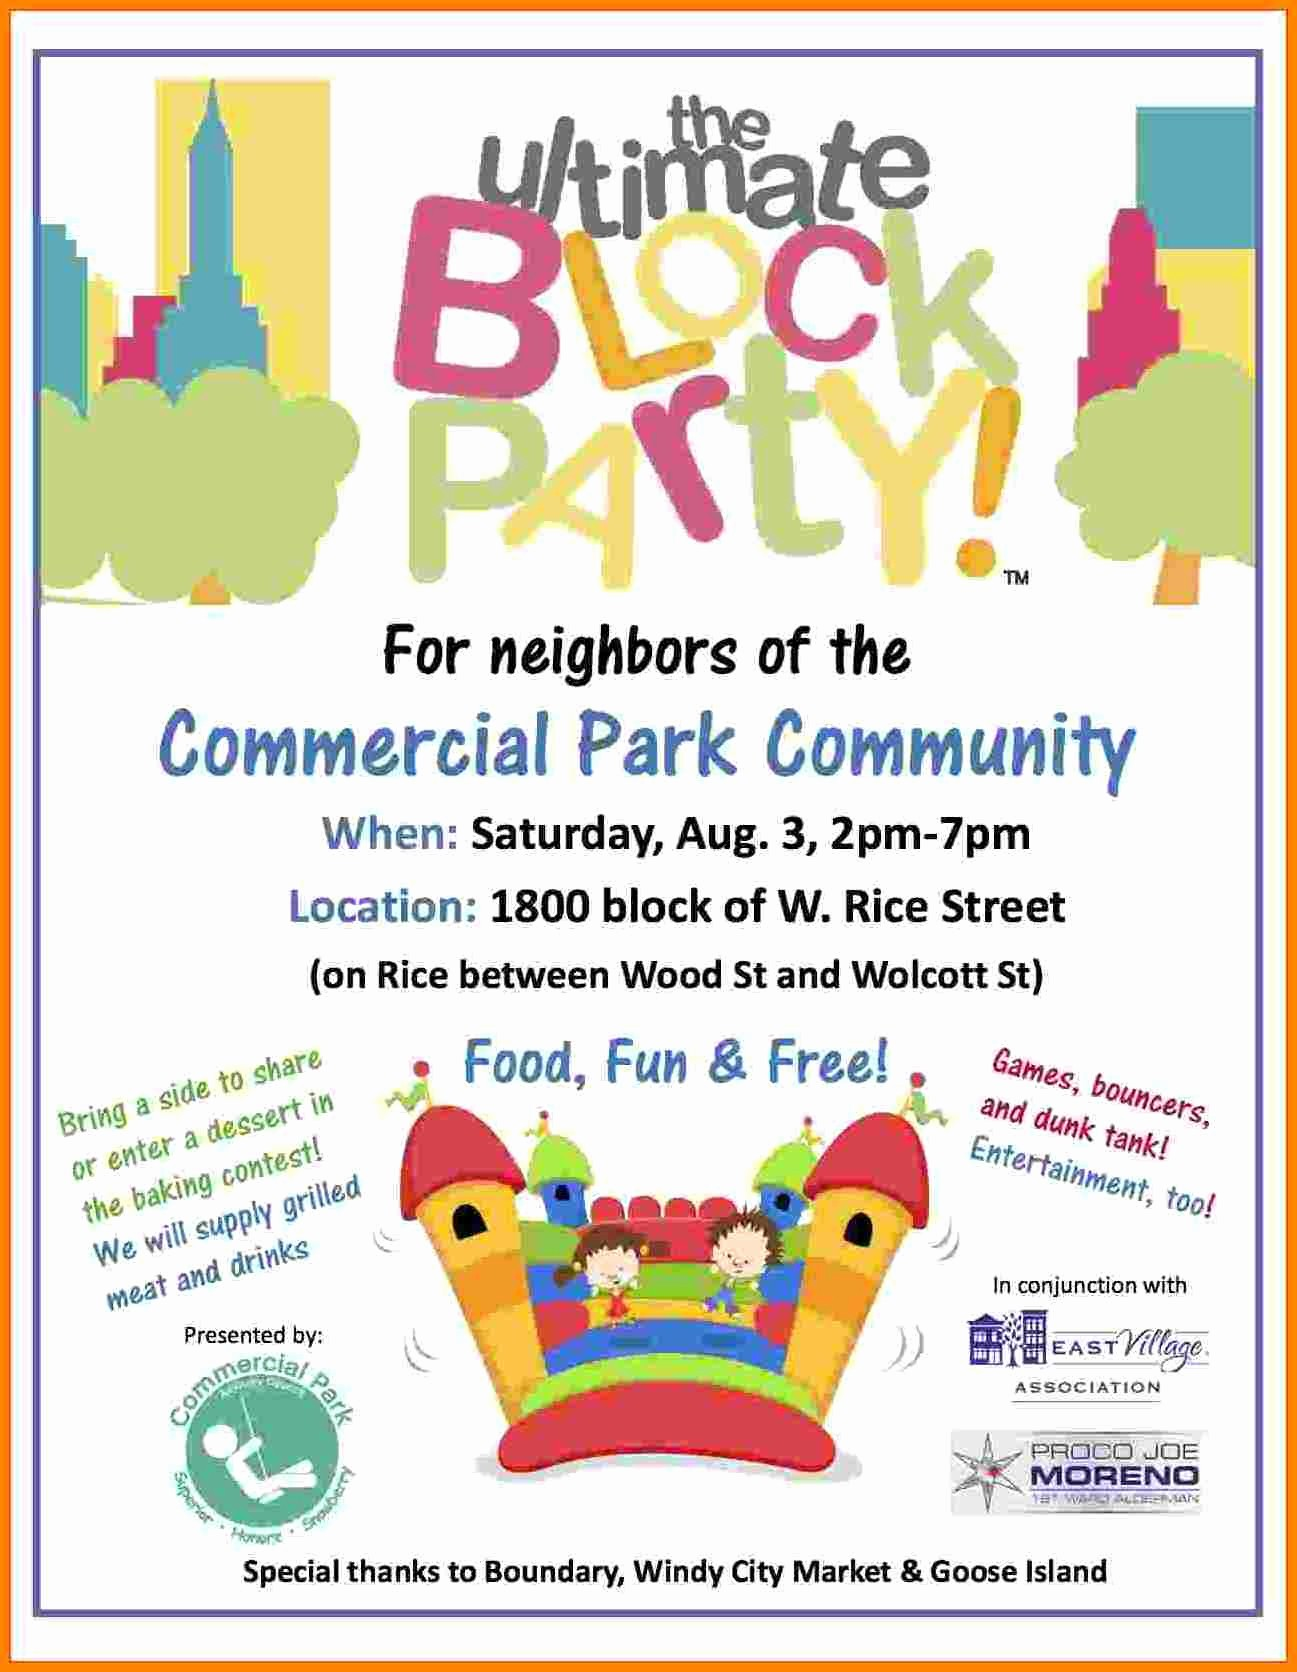 Free Block Party Flyer Template Best Of Neighborhood Block Party Flyer Templ Free Holiday